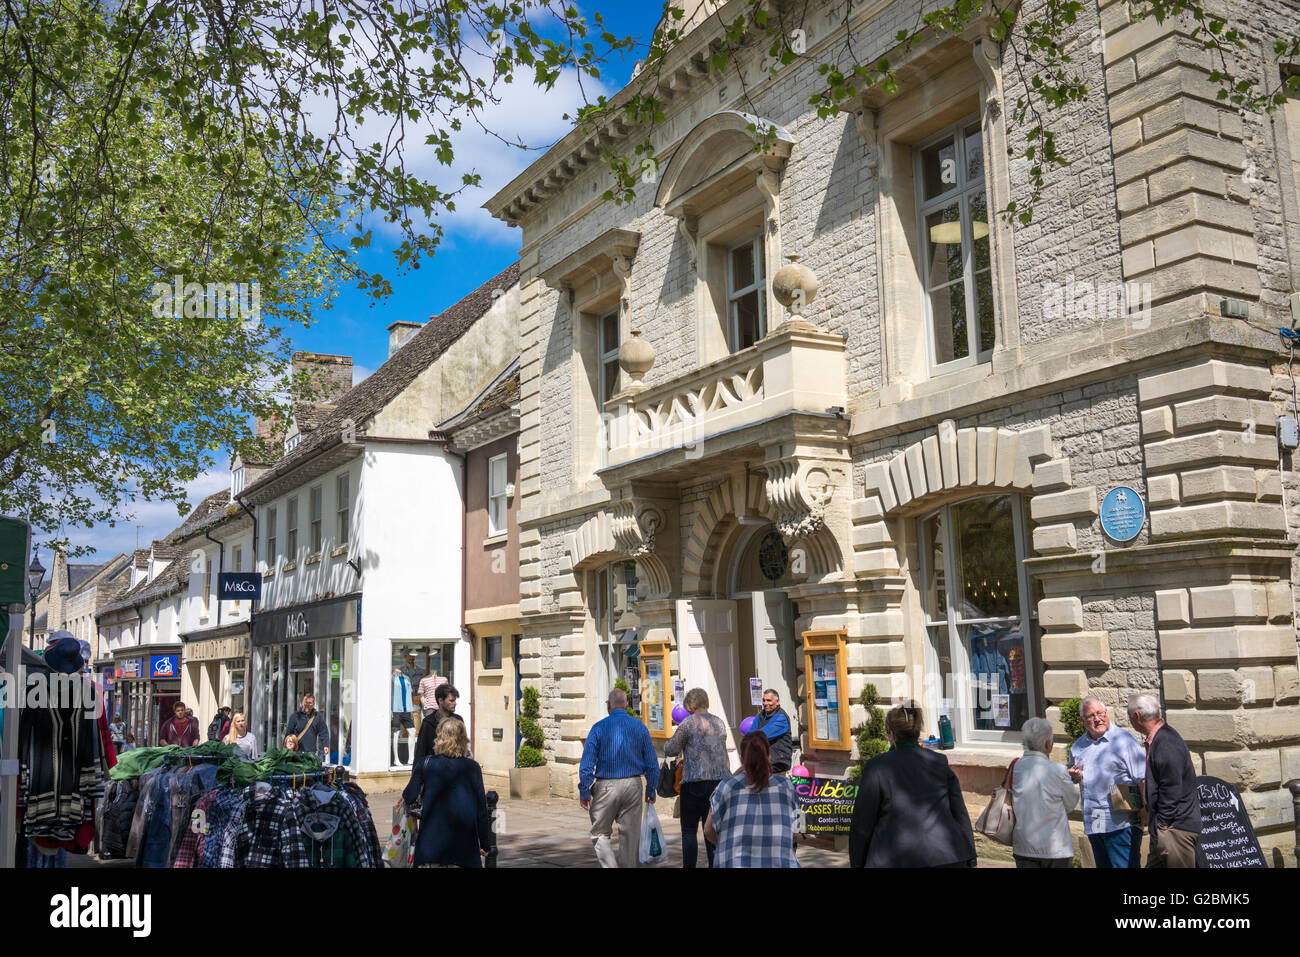 Witney town centre, Witney, Oxfordshire - Stock Image